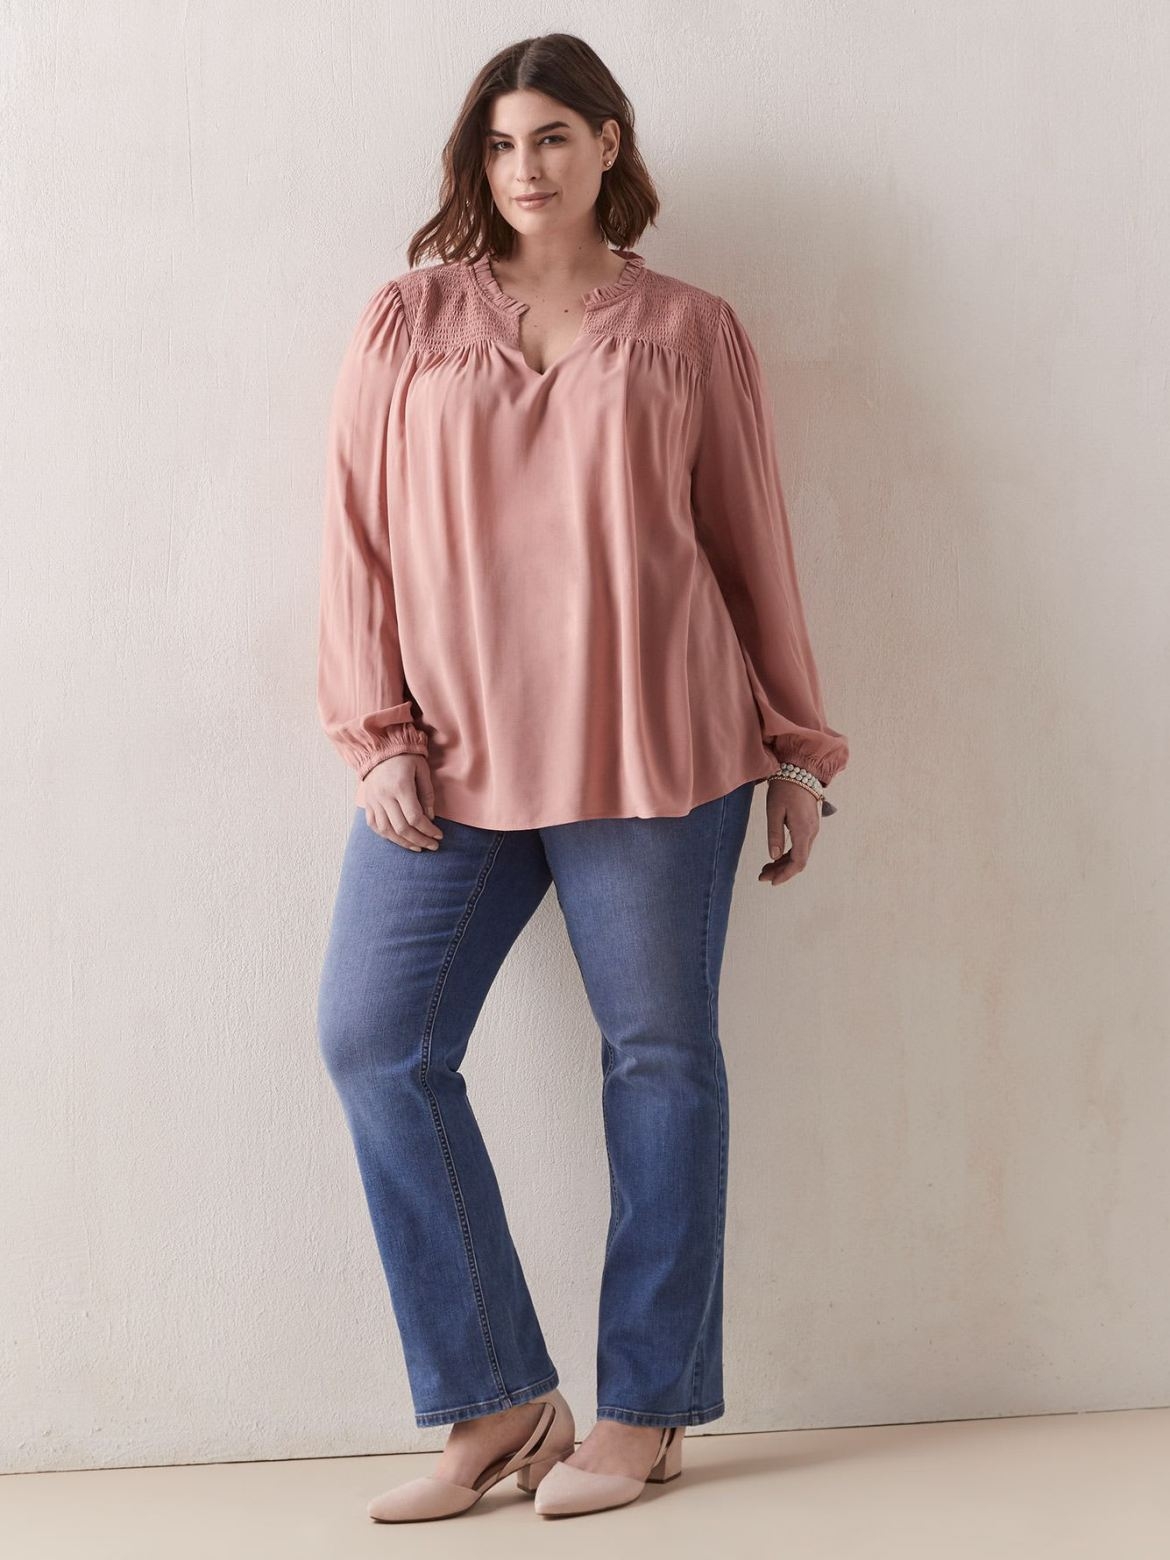 Solid Blouse With Balloon Sleeves - In Every Story